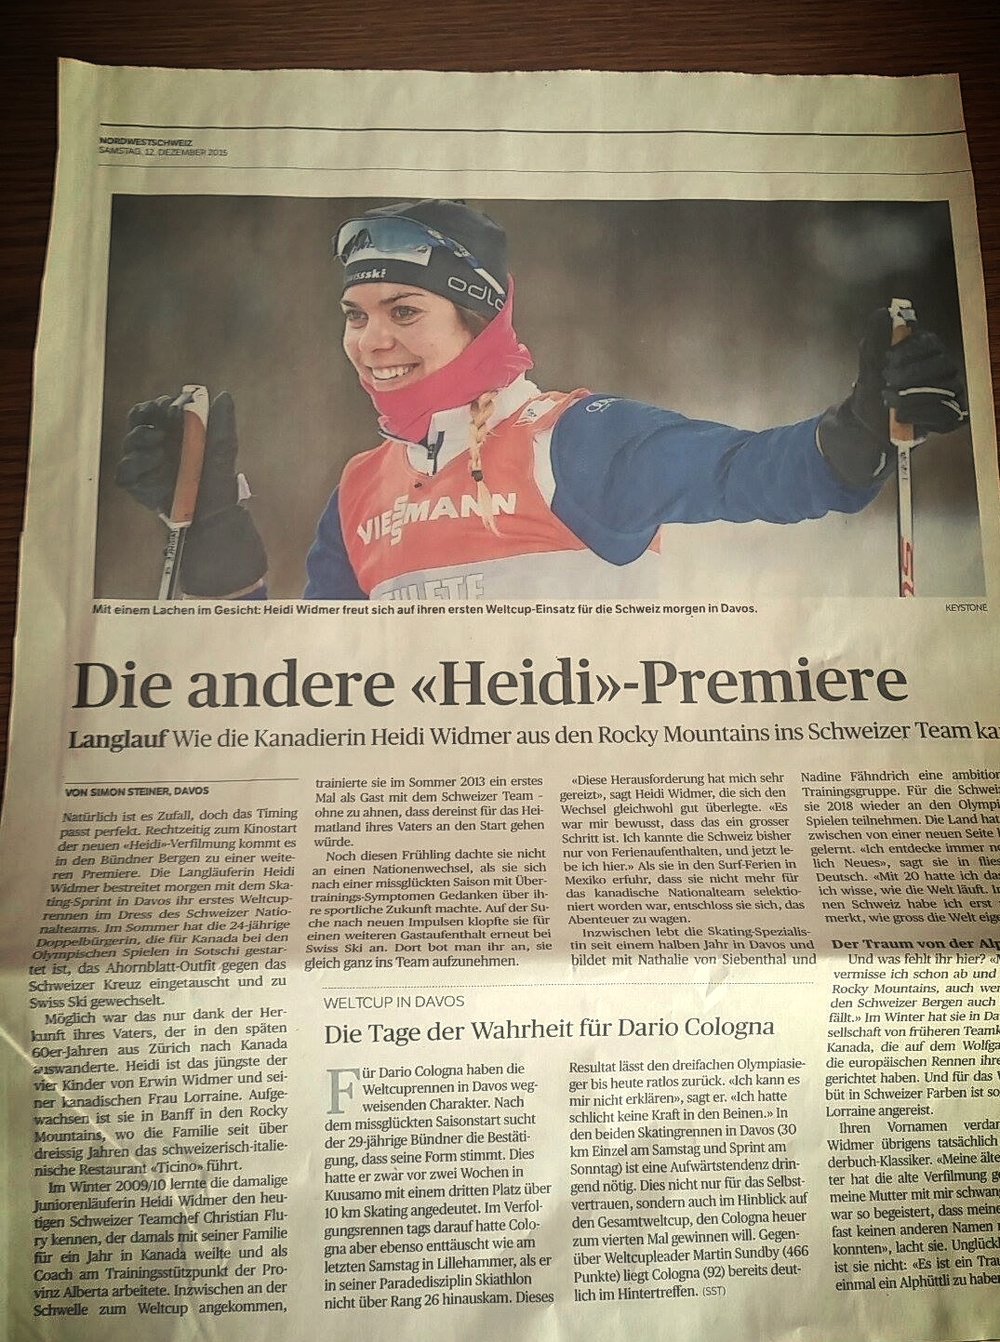 Article featured in Aargauer Zeitung - thanks to Simon Steiner.